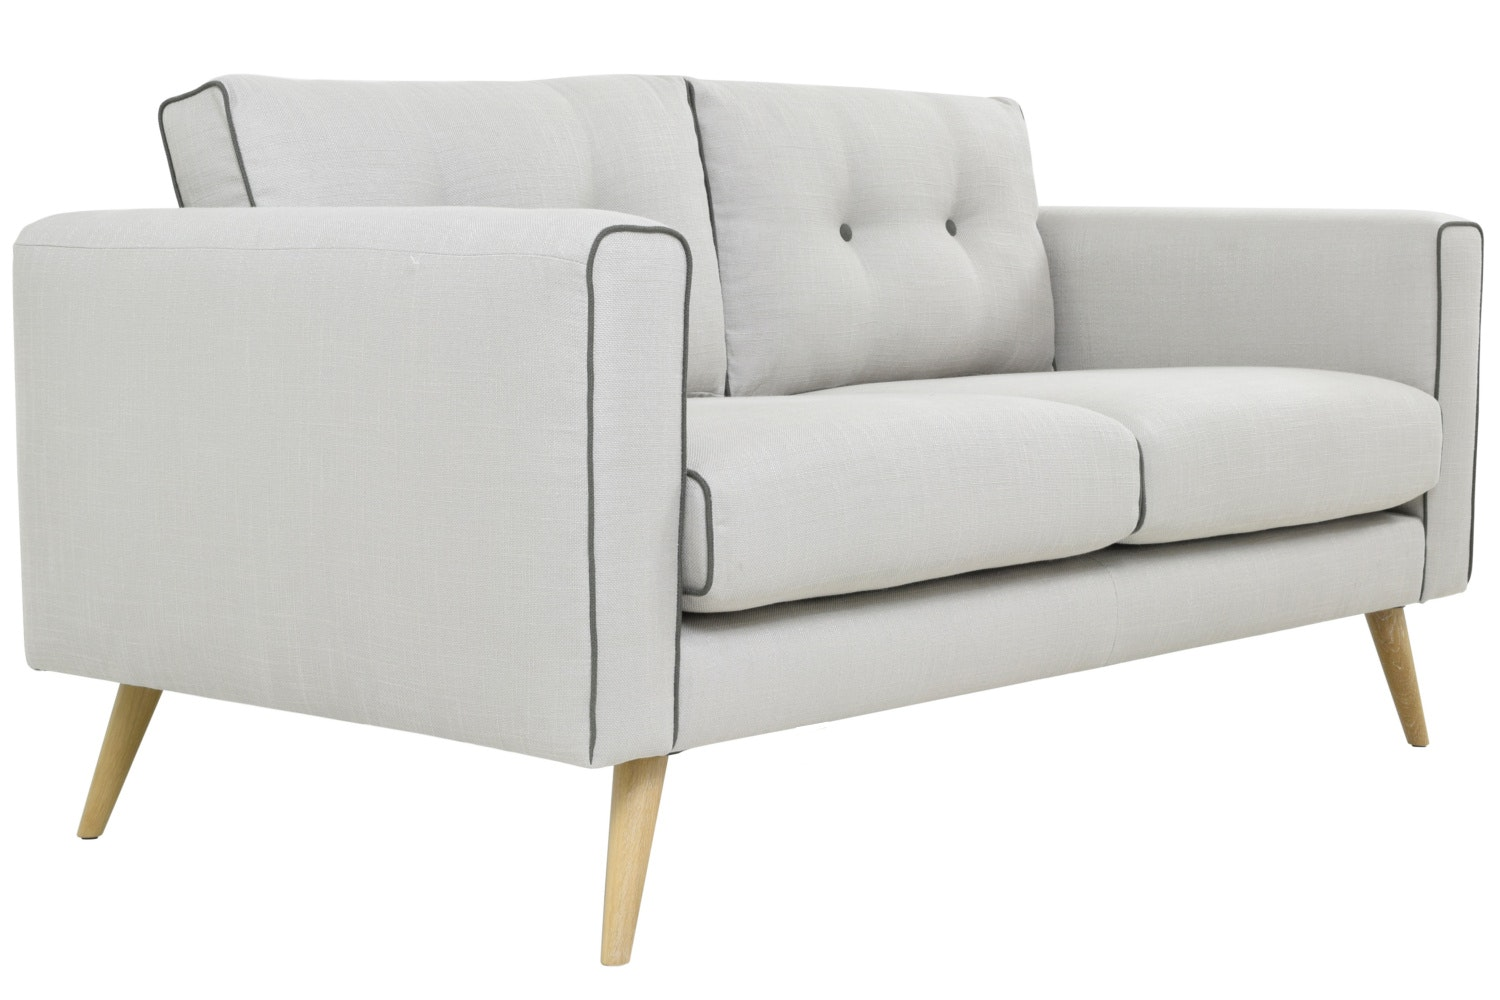 Adela 2-Seater Sofa